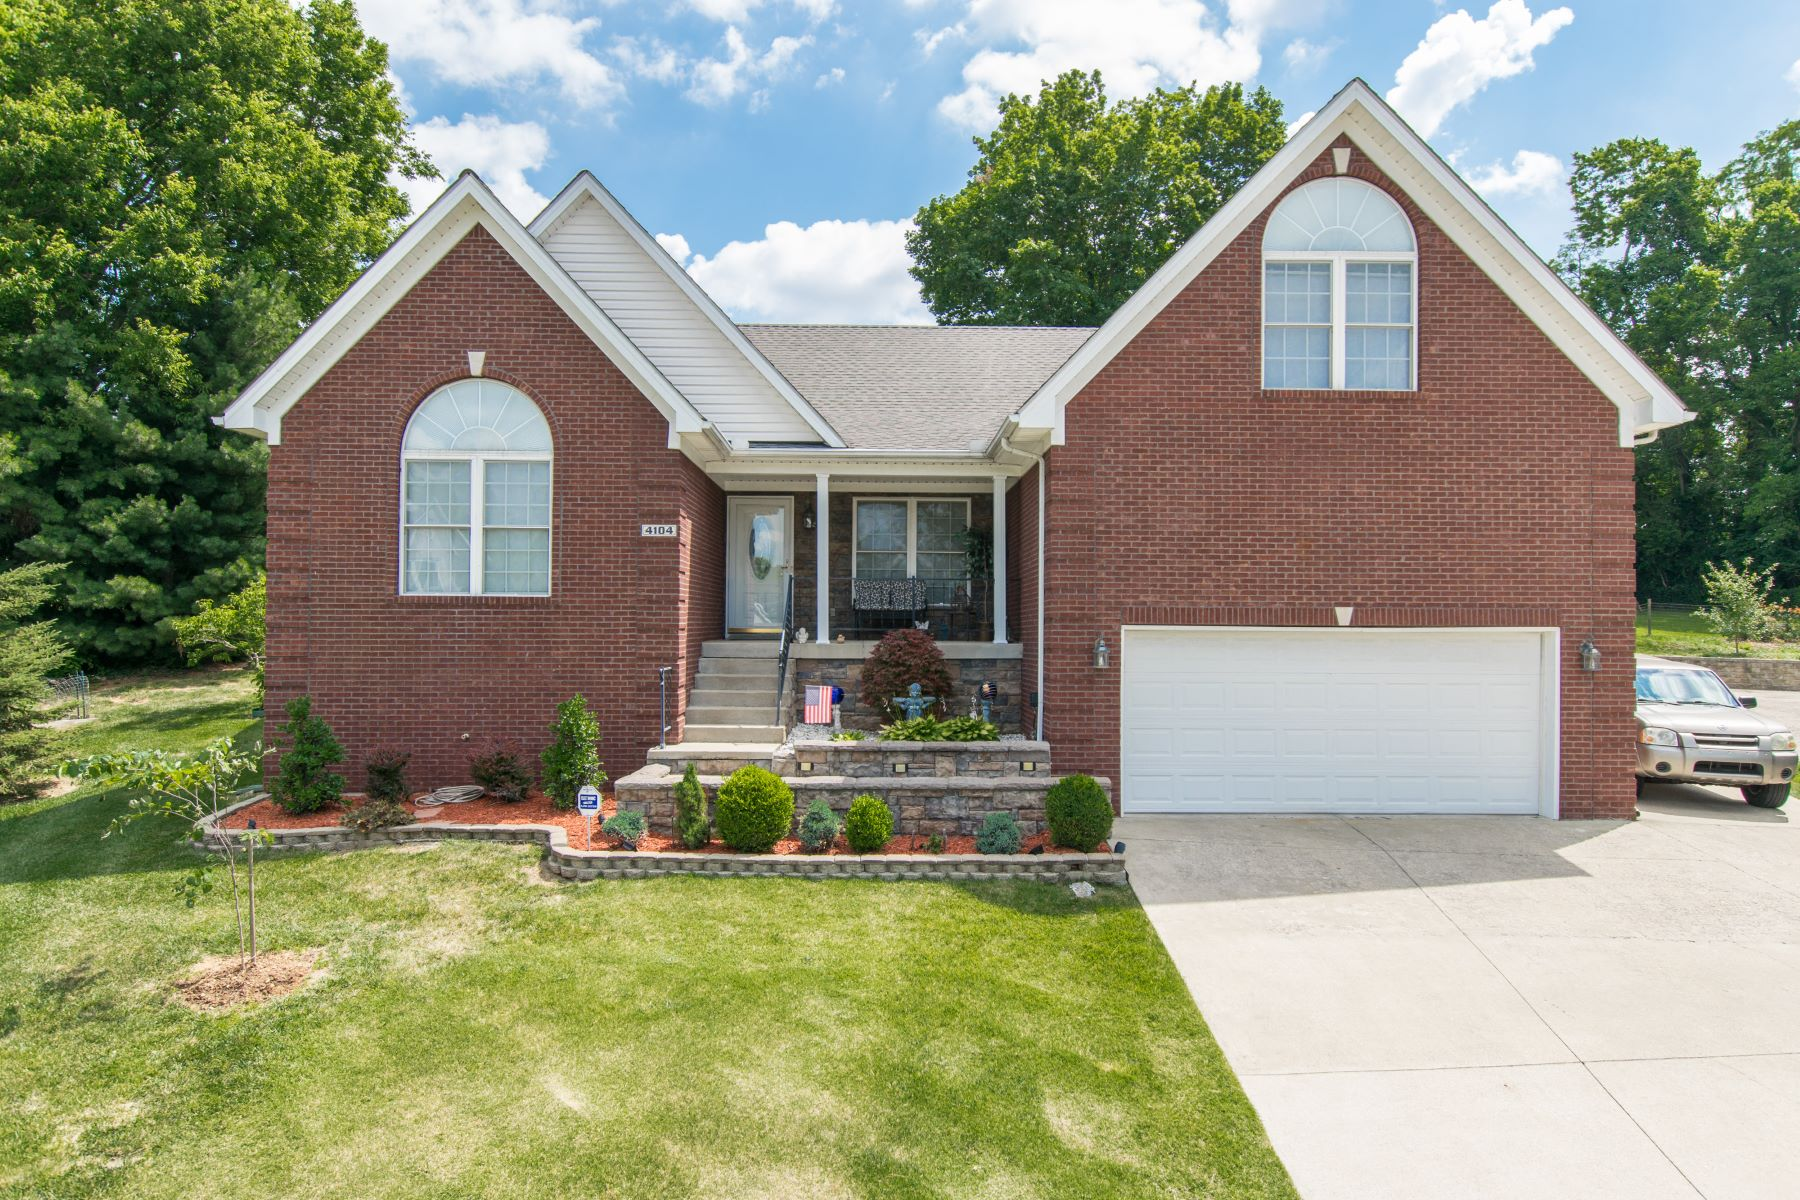 Single Family Home for Sale at 4104 Hunsinger Woods Place Louisville, Kentucky 40220 United States